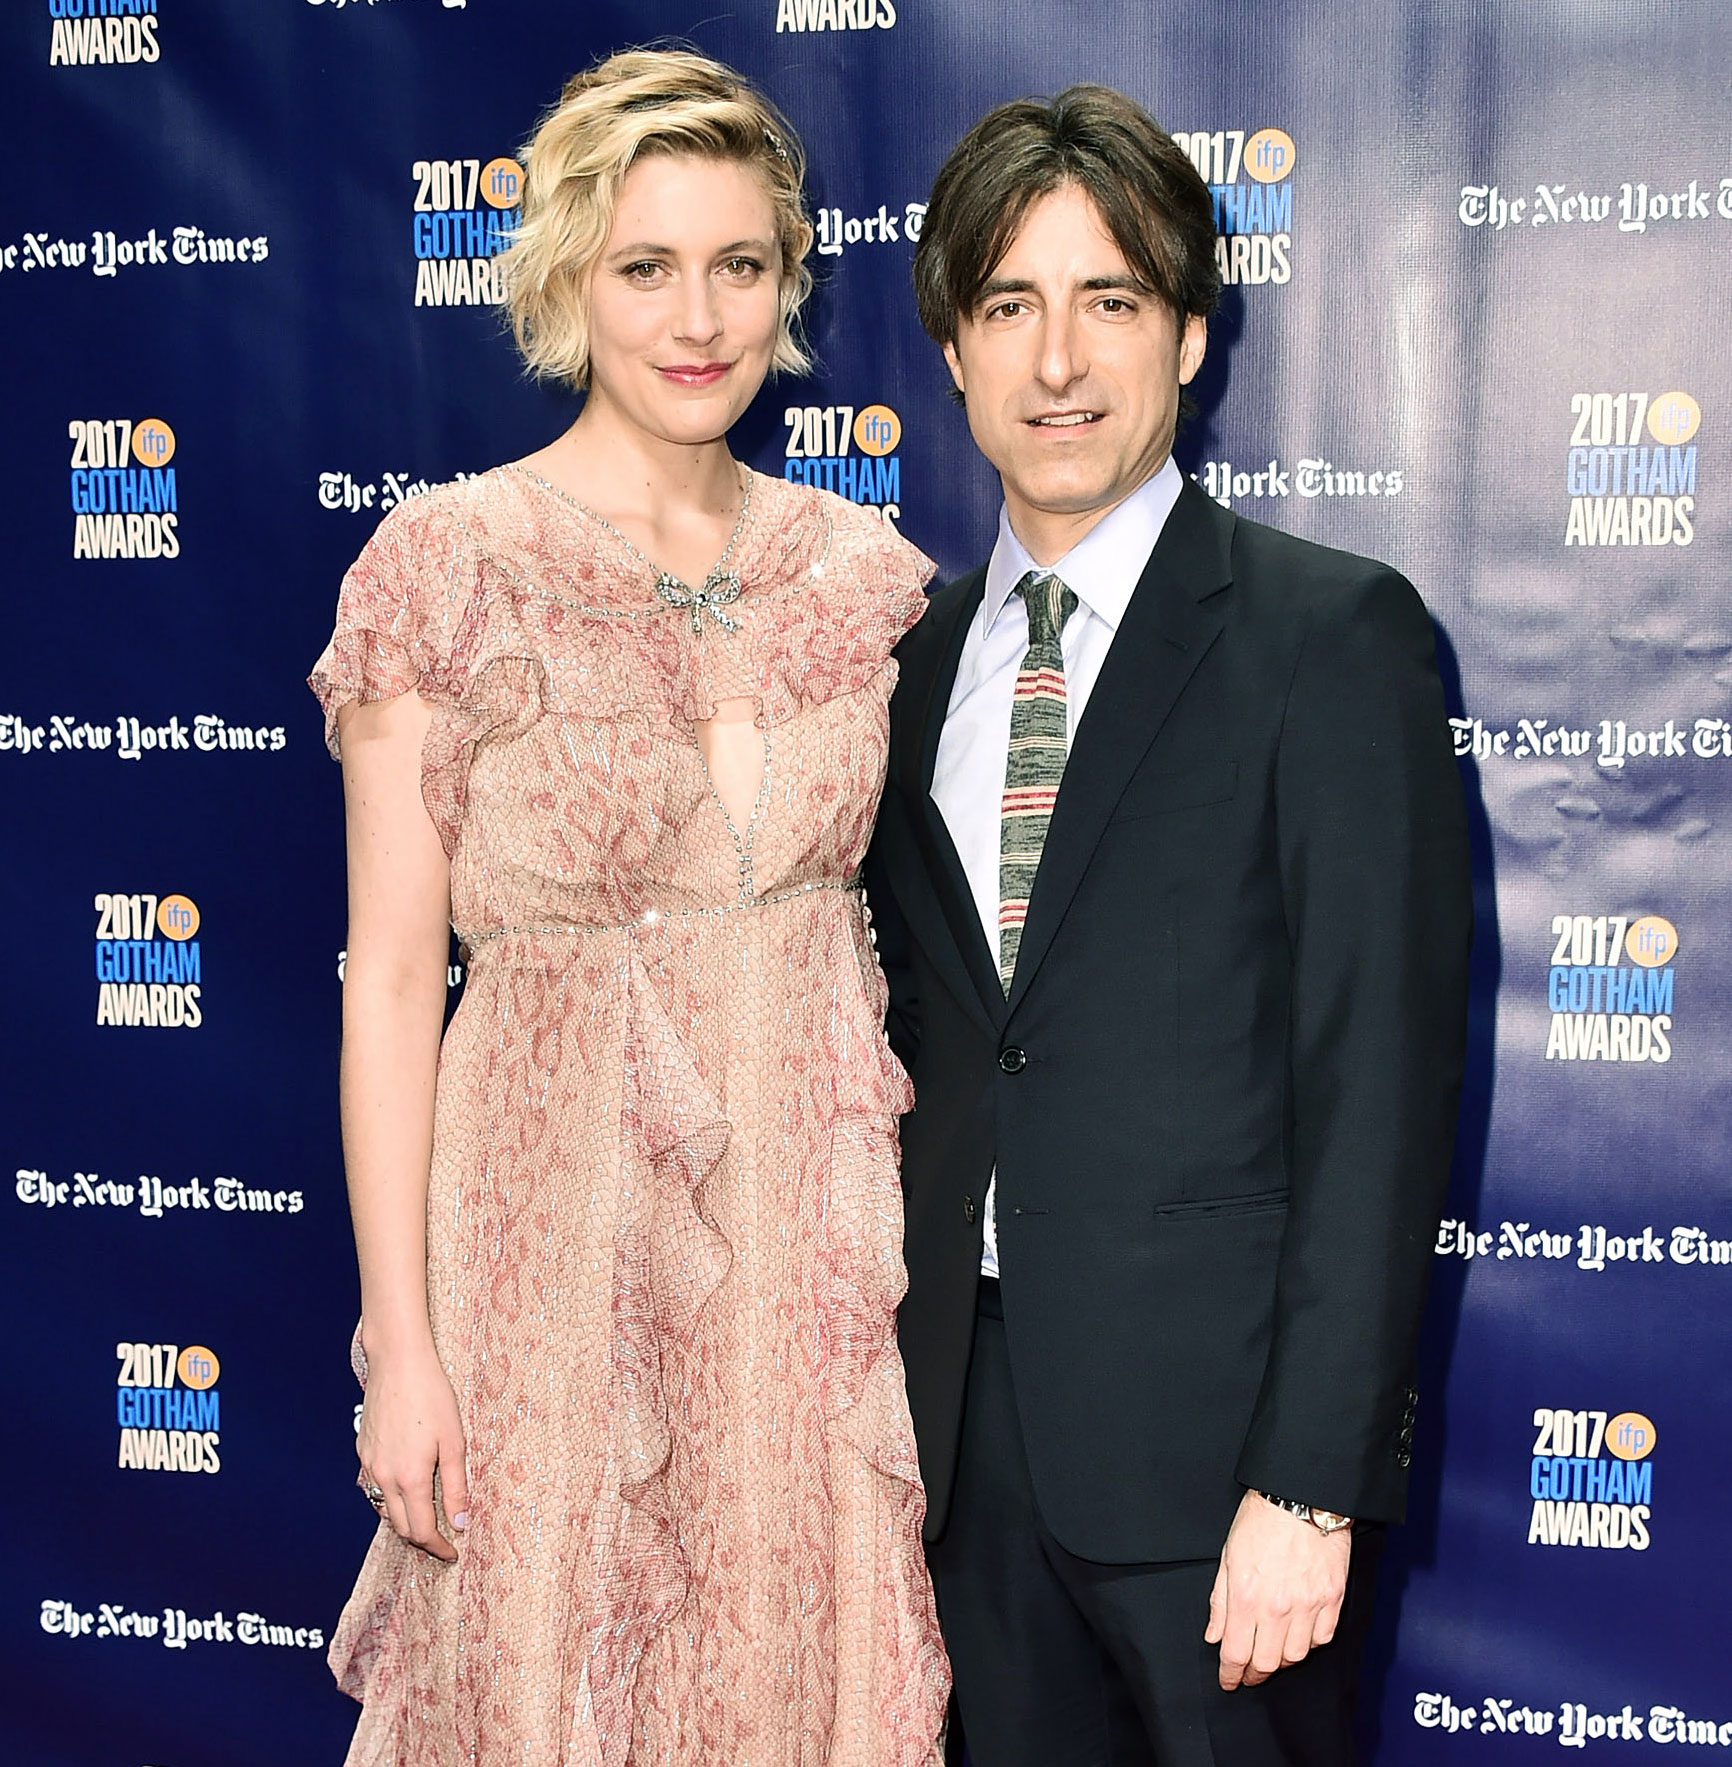 Greta Gerwig Noah Baumbach Welcome First Child - Us Weekly confirmed in March that Greta Gerwig and her longtime love, Noah Baumbach, welcomed their first child together, a baby boy. The Lady Bird writer/director and the While We're Young writer fueled speculation that they secretly started a family after they were spotted walking with a baby stroller in New York City.